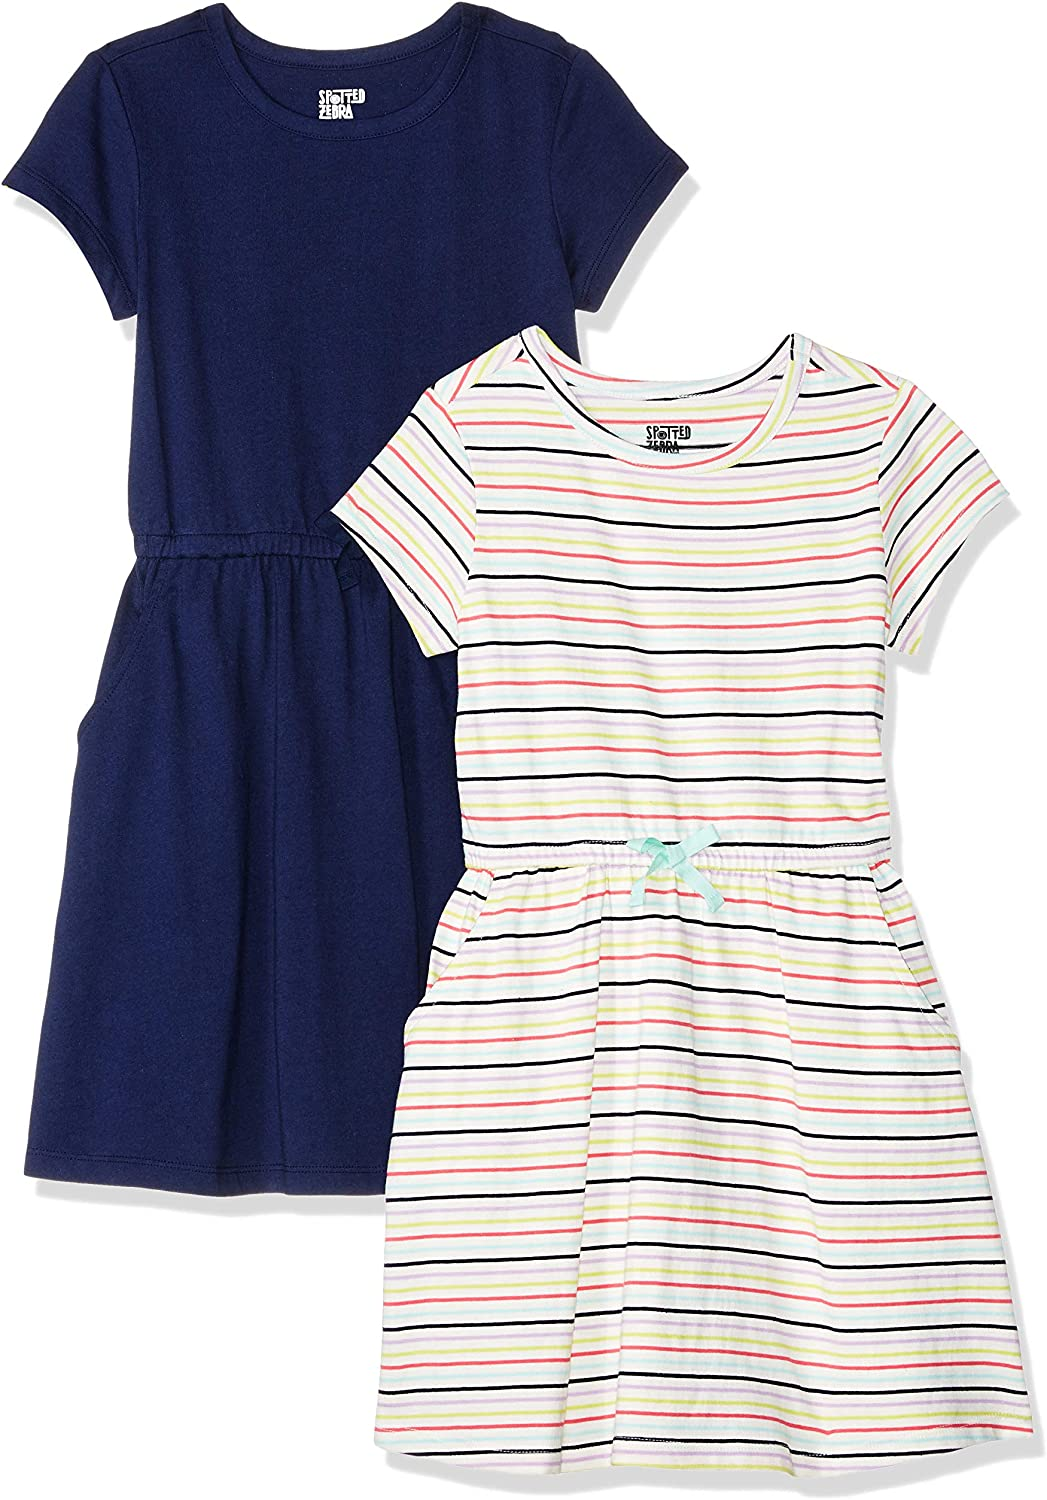 Spotted Zebra Girls Toddler /& Kids 2-Pack Knit Short-Sleeve Cinch Waist Dresses